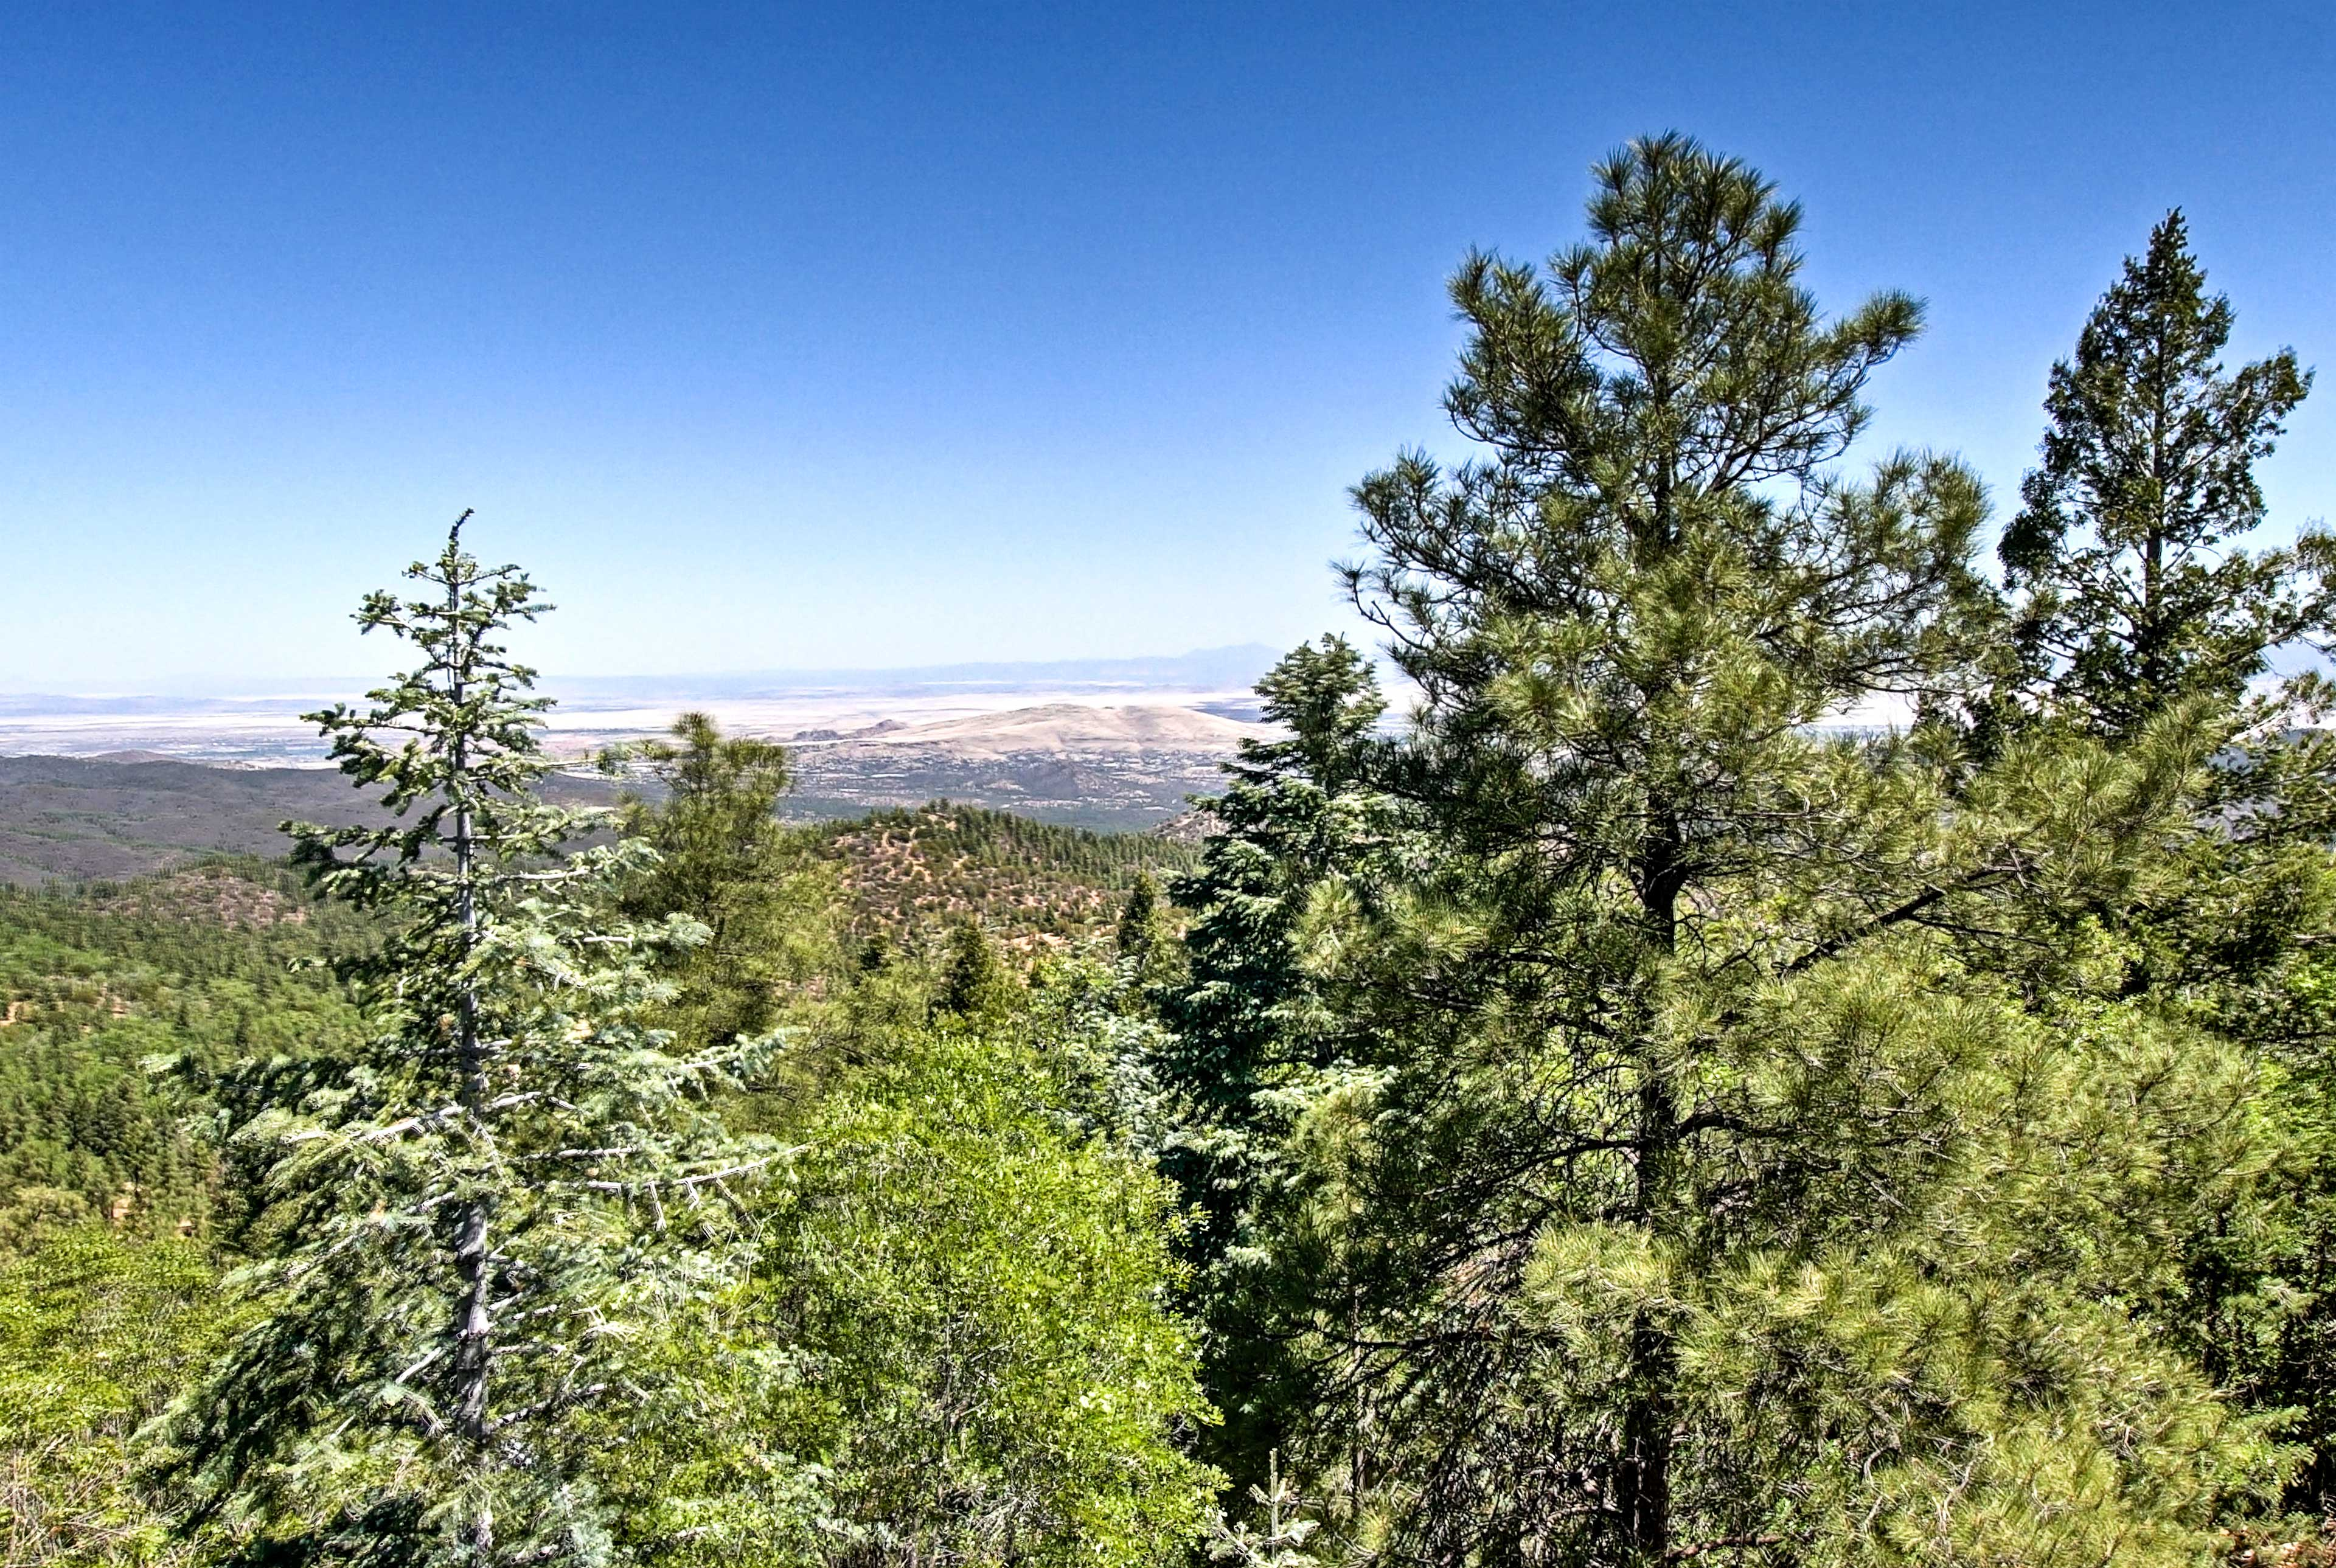 Hiking, mountain biking, fishing and more are just steps away from this property!